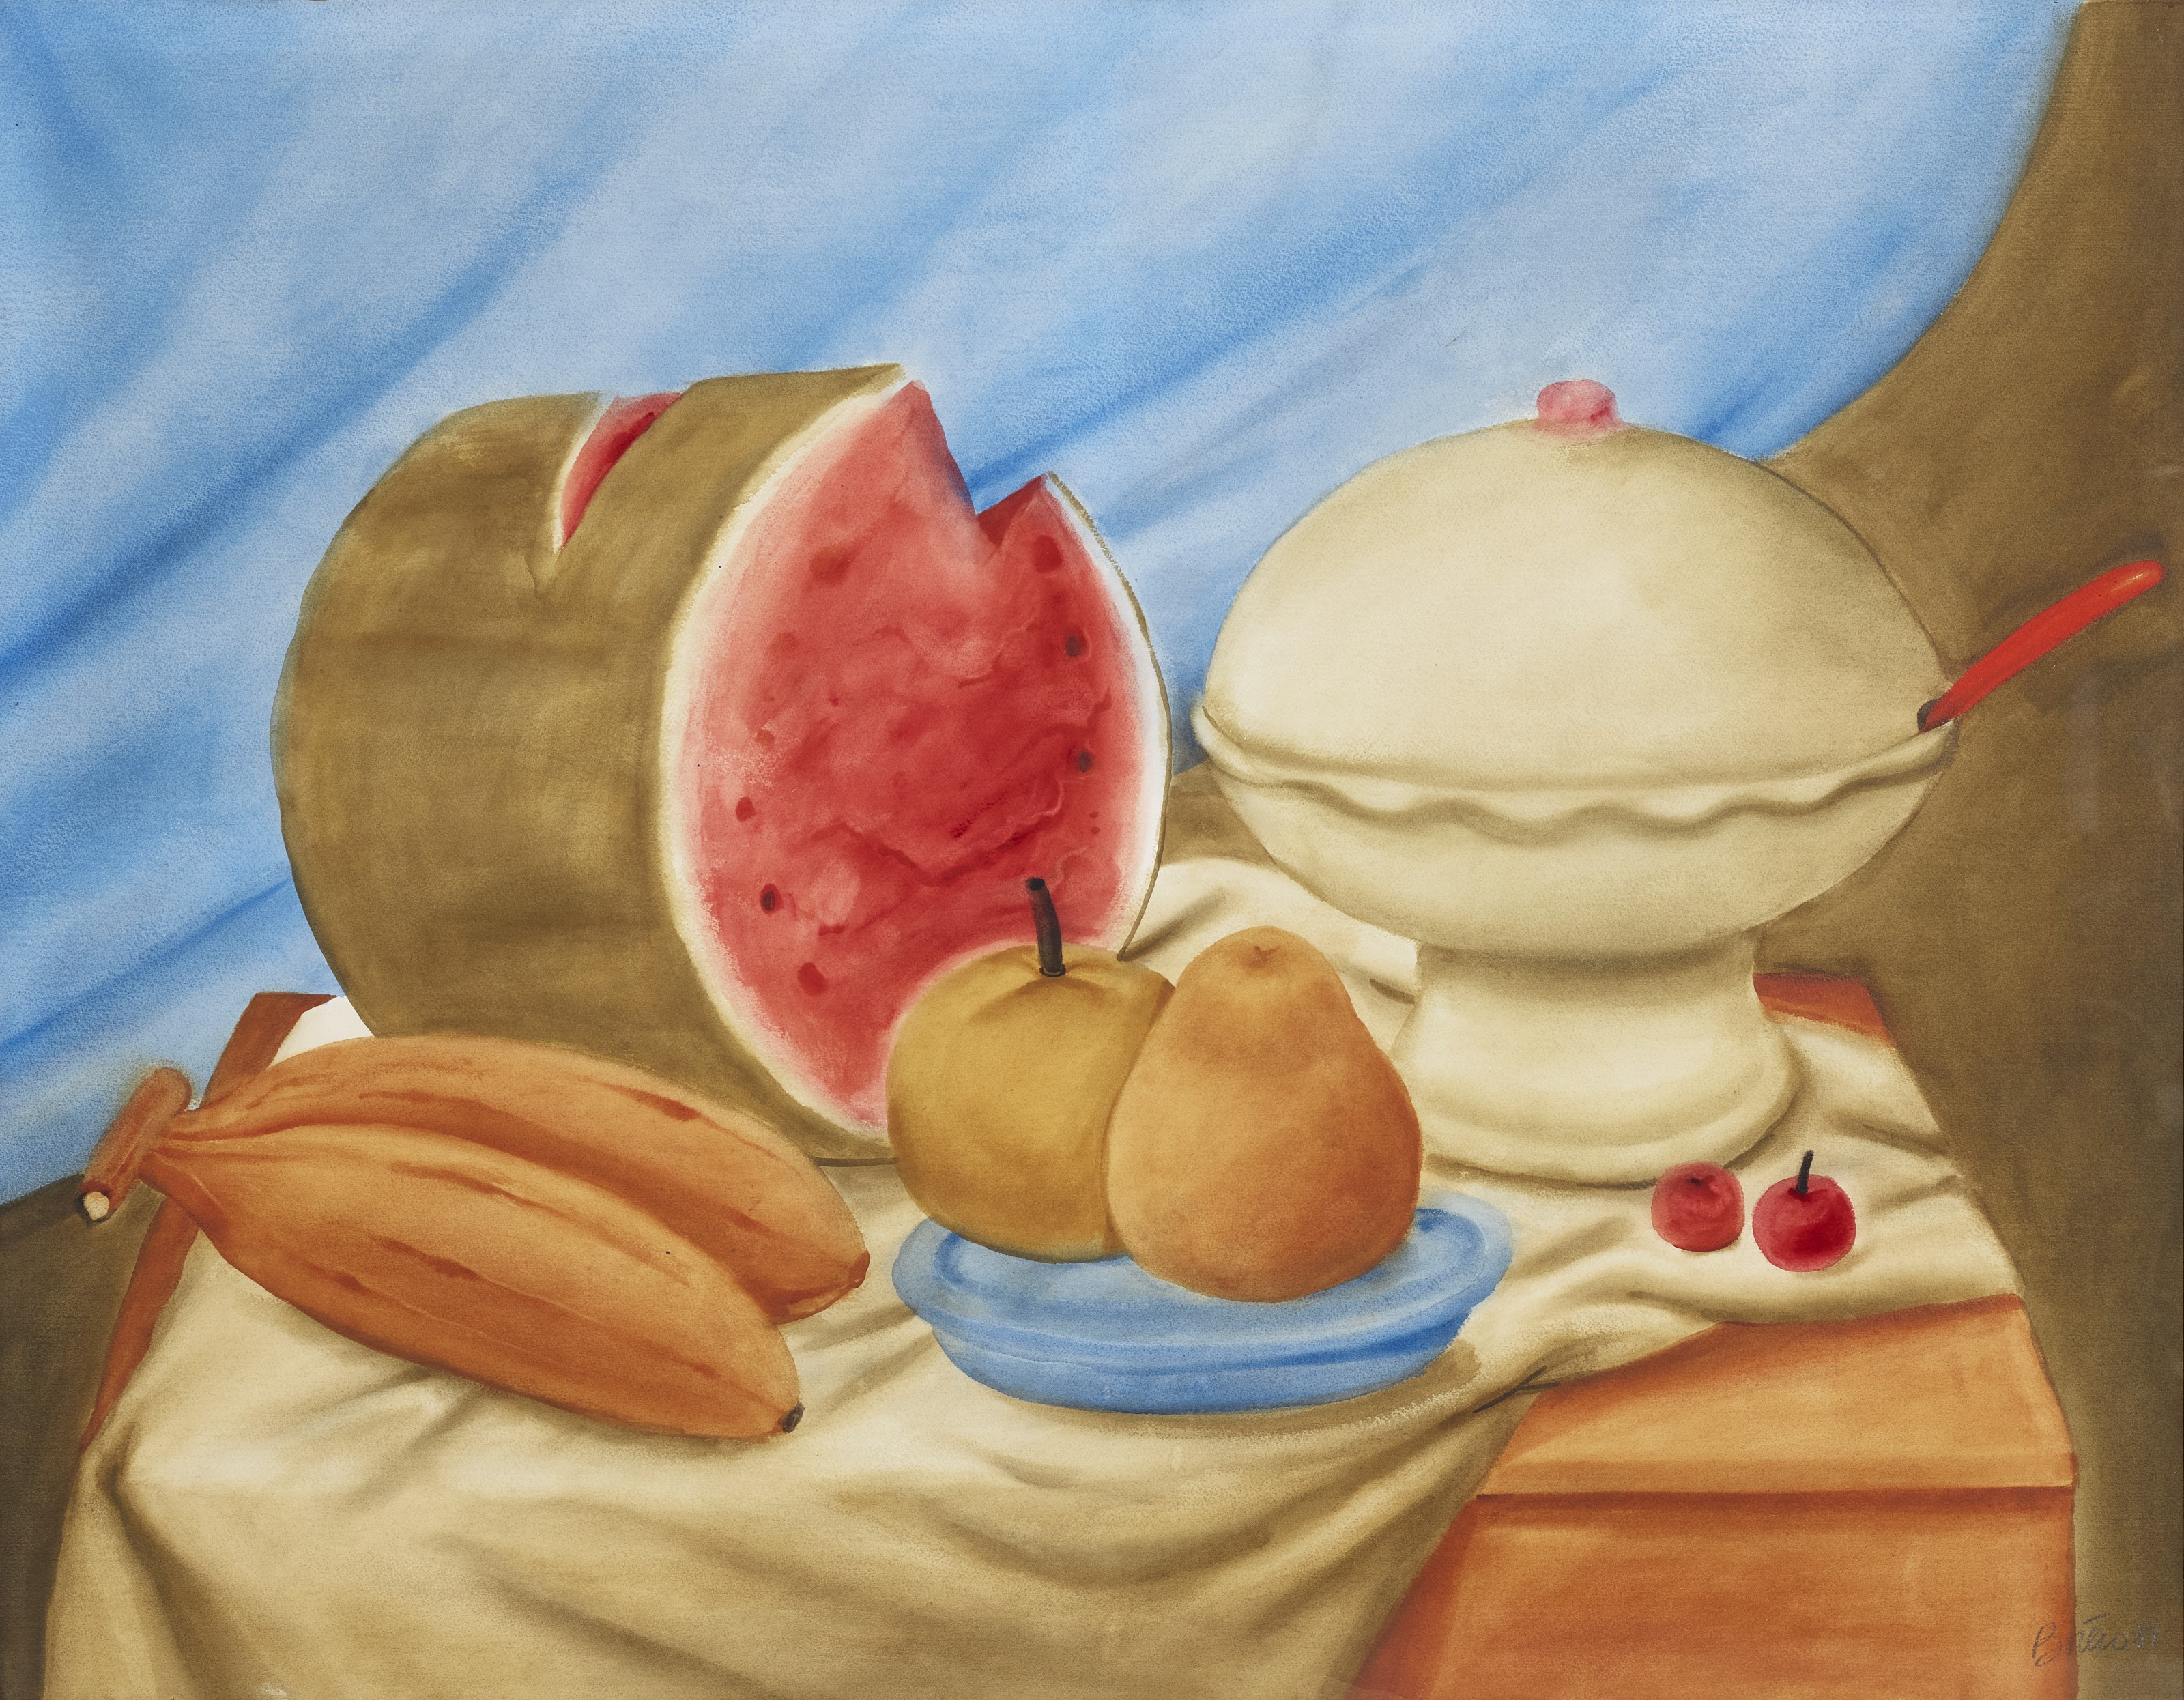 Fernando Botero (b. 1932), Still Life with Soup Tureen and Watermelon, 1981. Watercolour on paper. 43 x 54 in (109.2 x 137.2 cm). Estimate $150,000-250,000. Offered in Latin American Art on 19 May 2021 at Christie's in New York